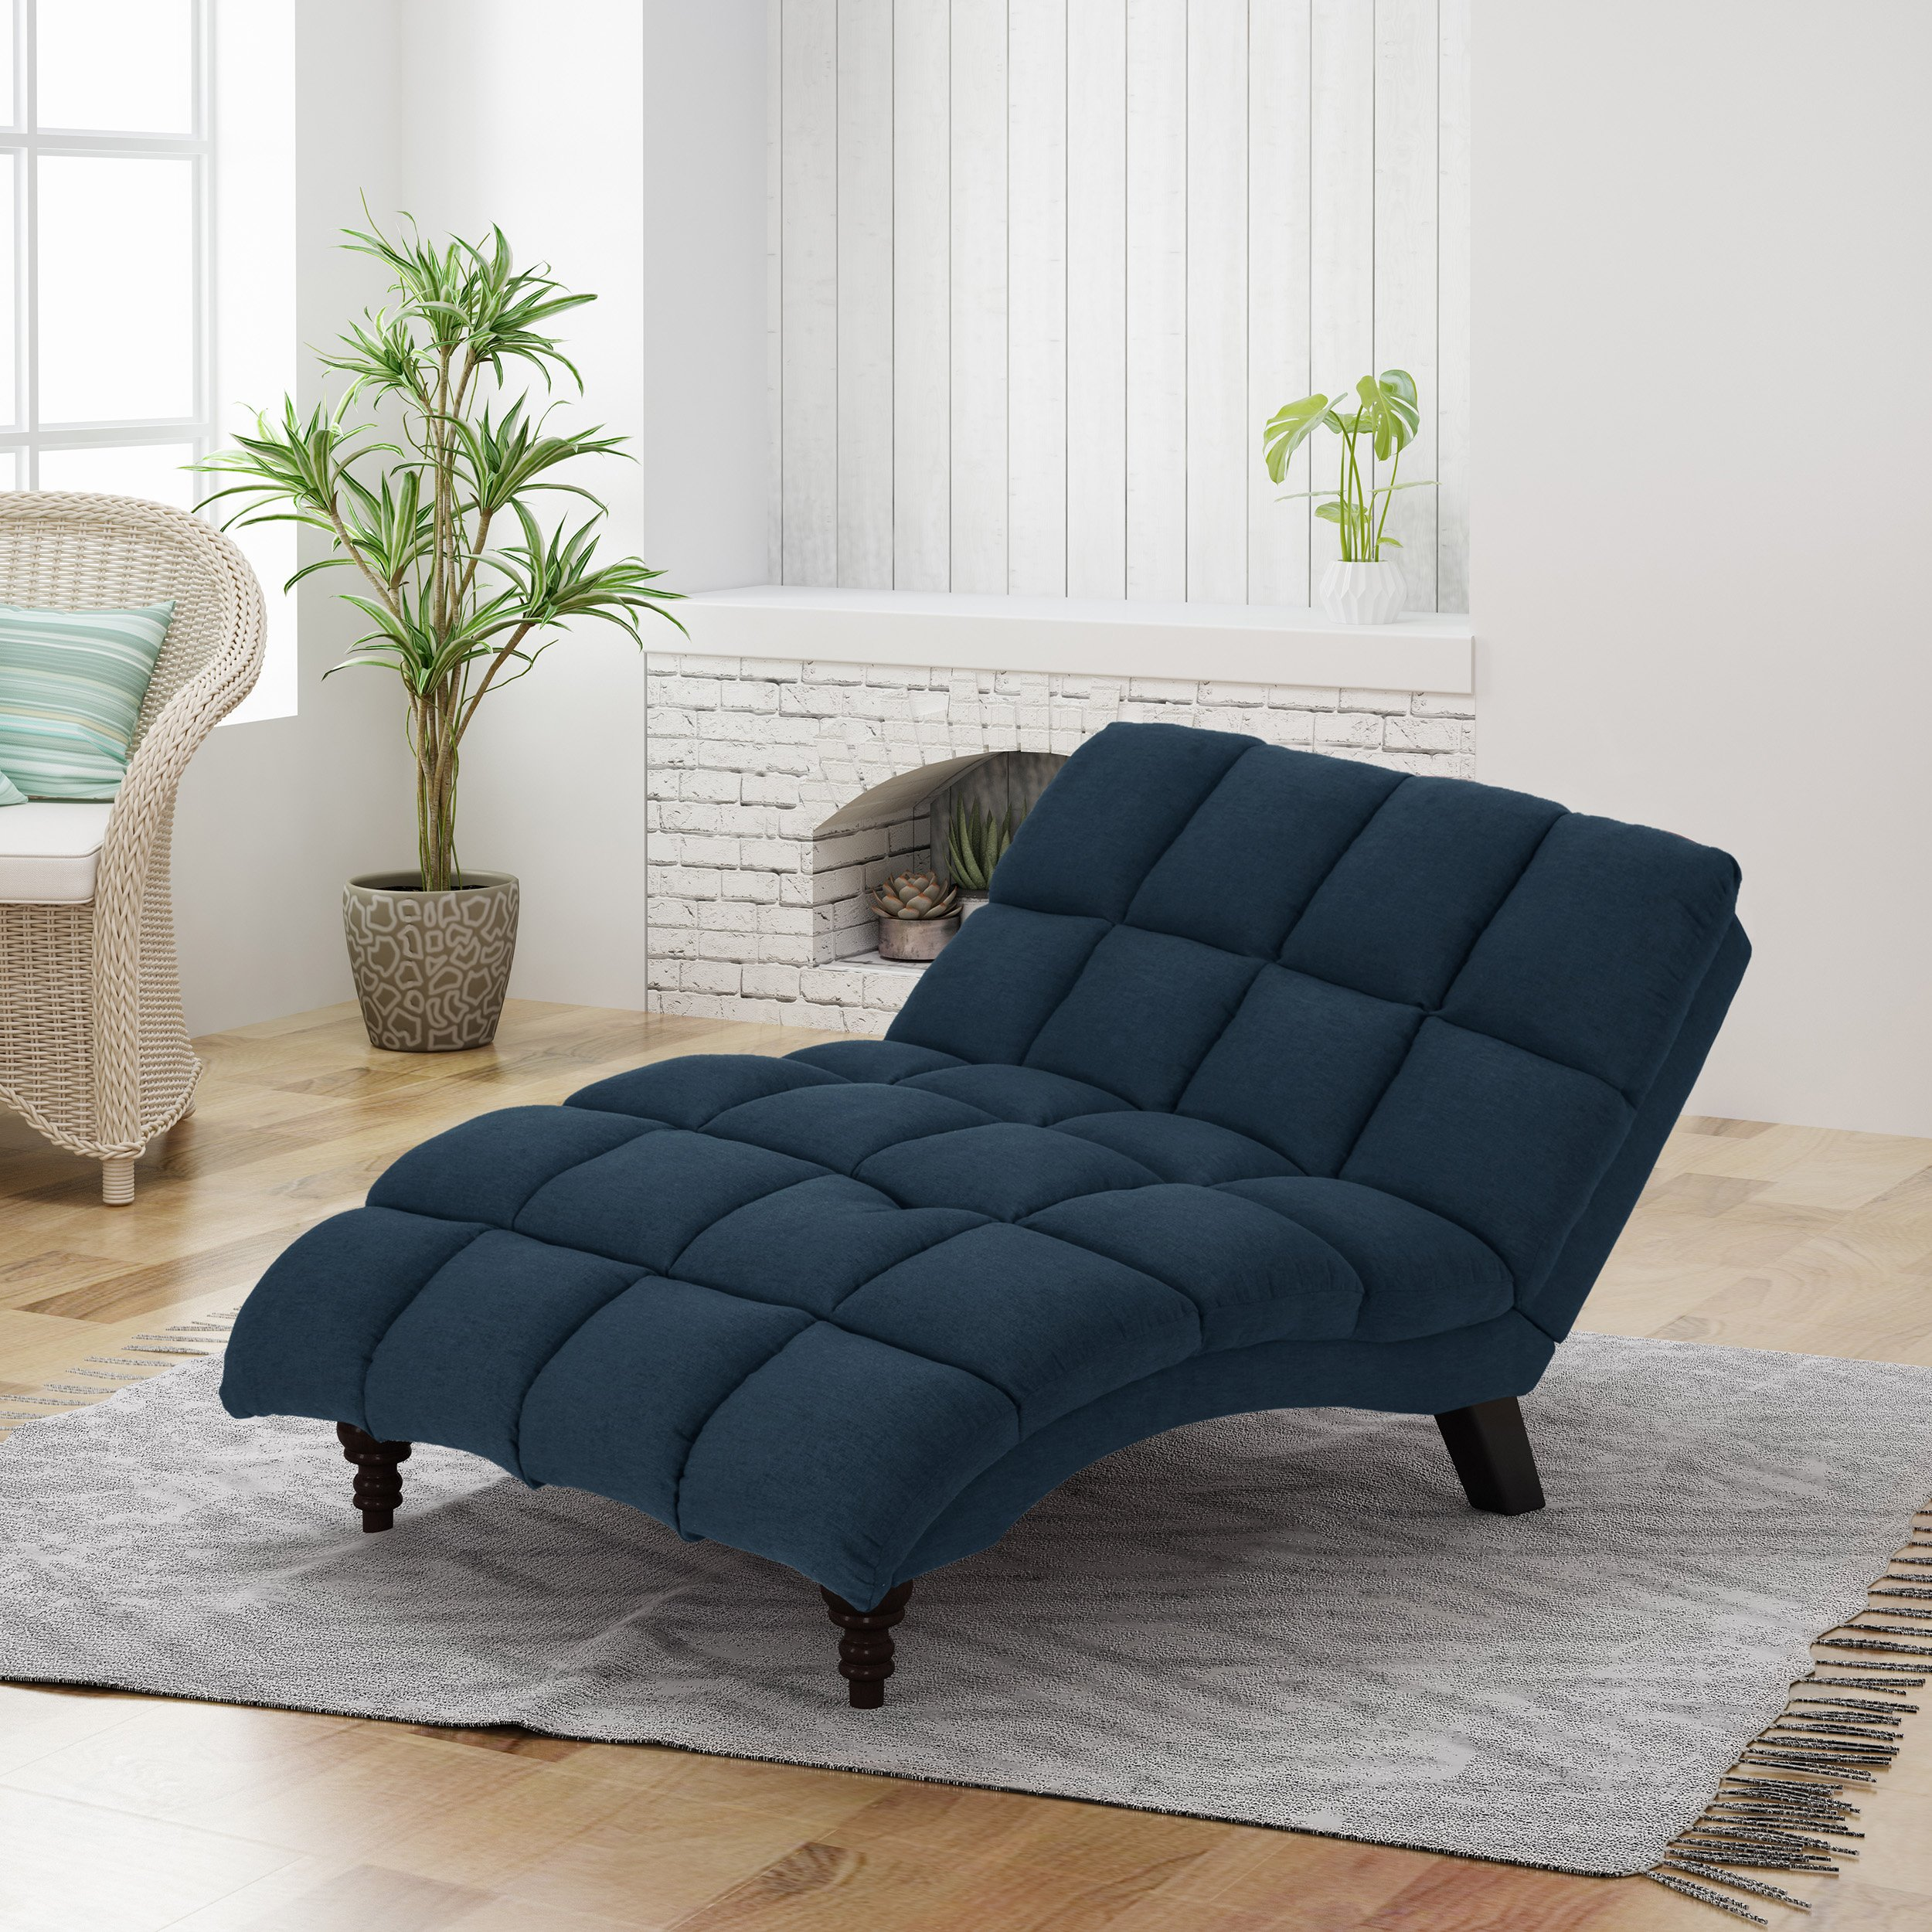 Christopher Knight Home Tom Traditional Tufted Fabric Double Chaise, Navy Blue/Dark Espresso by Christopher Knight Home